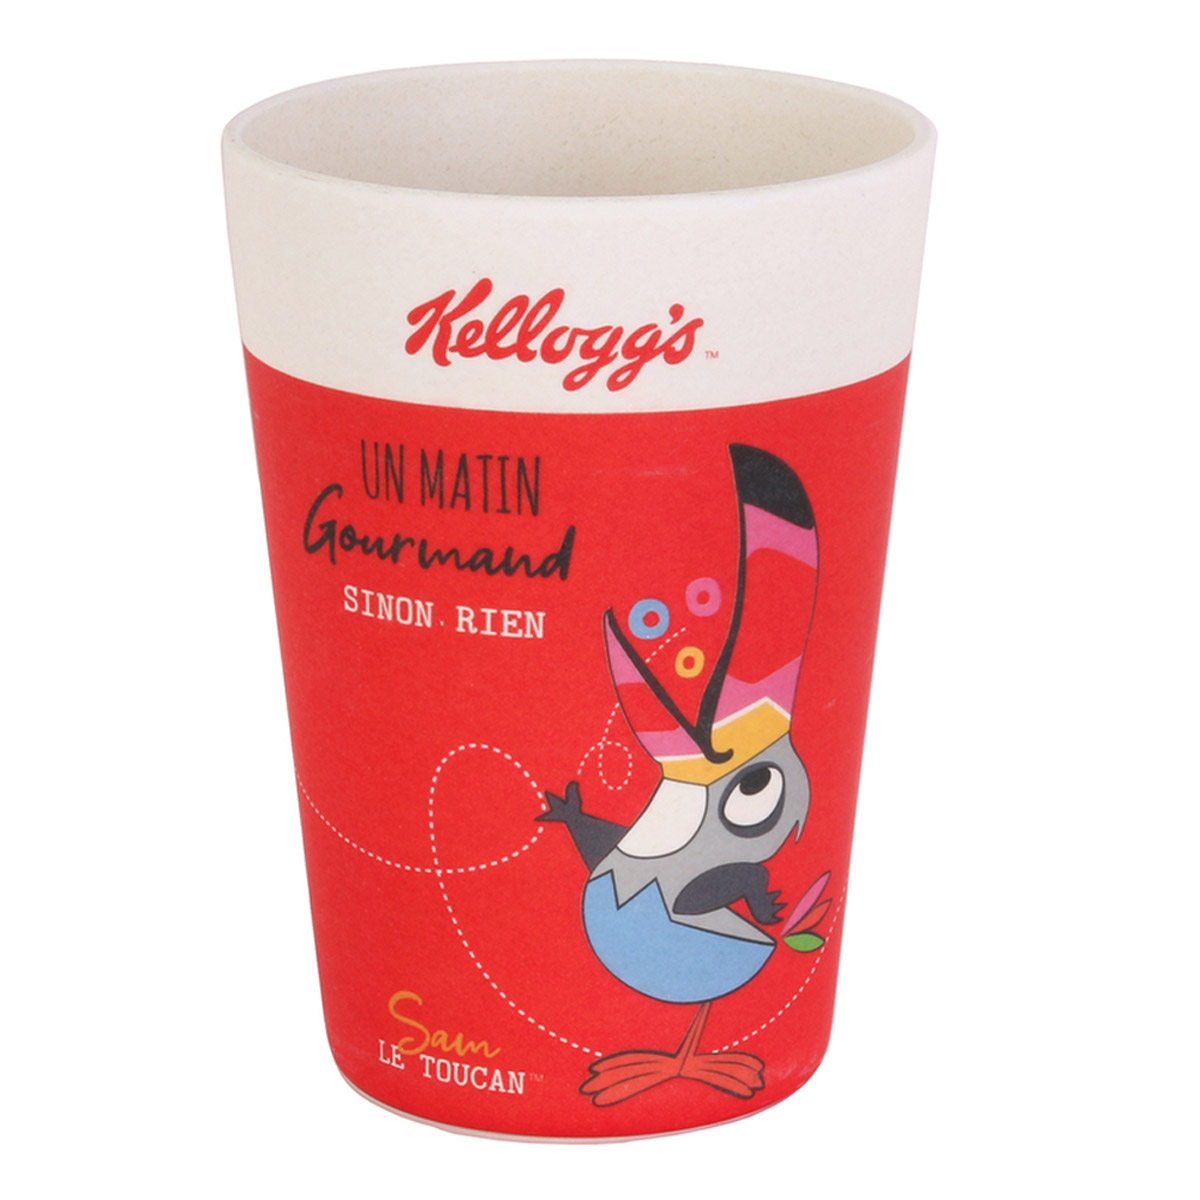 Gobelet verre bambou \'Kellogg\'s\' rouge - 10x85 cm (30 cl) - [R2443]